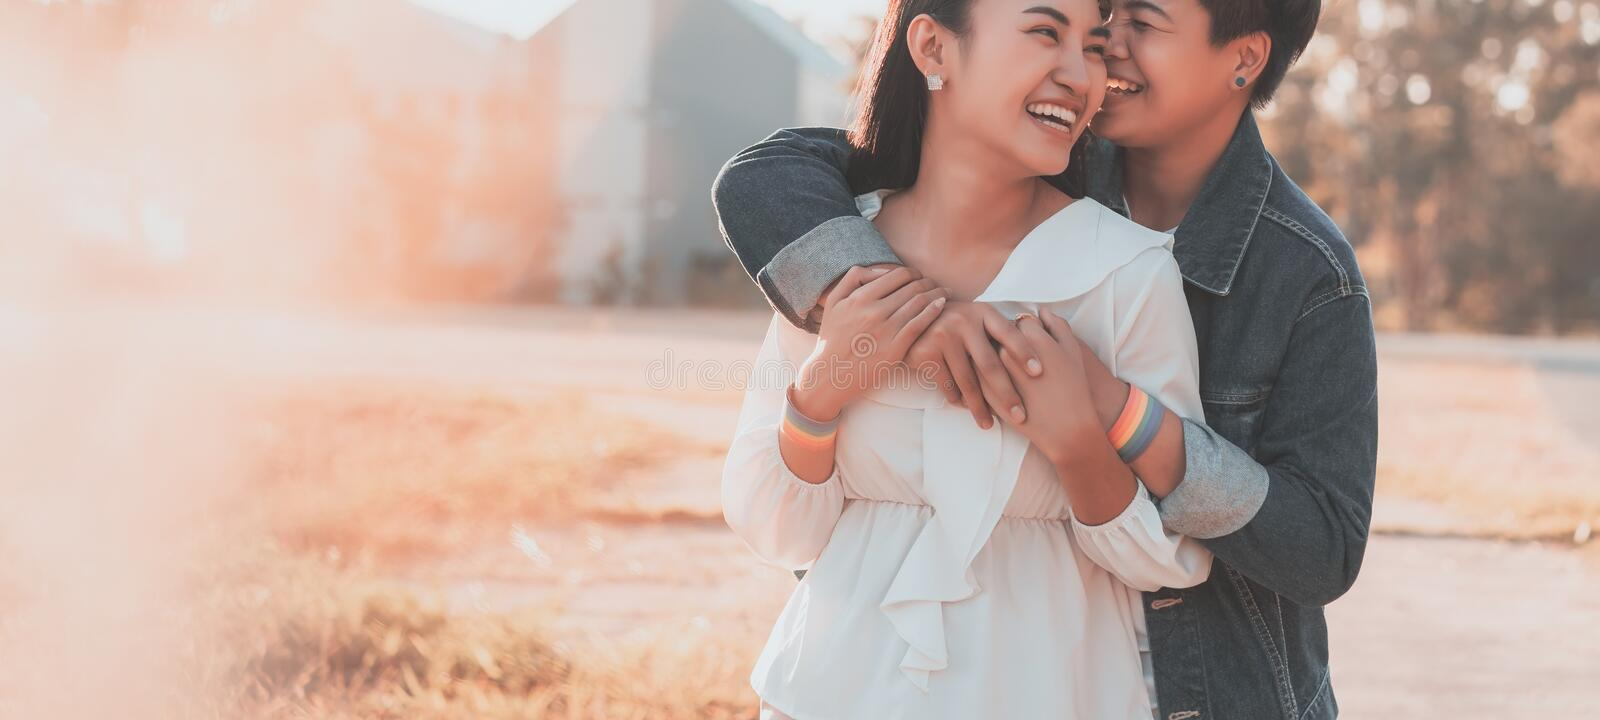 Portrait of Lesbian couple standing and hugging relaxing at sunset. LGBT rights concept royalty free stock images